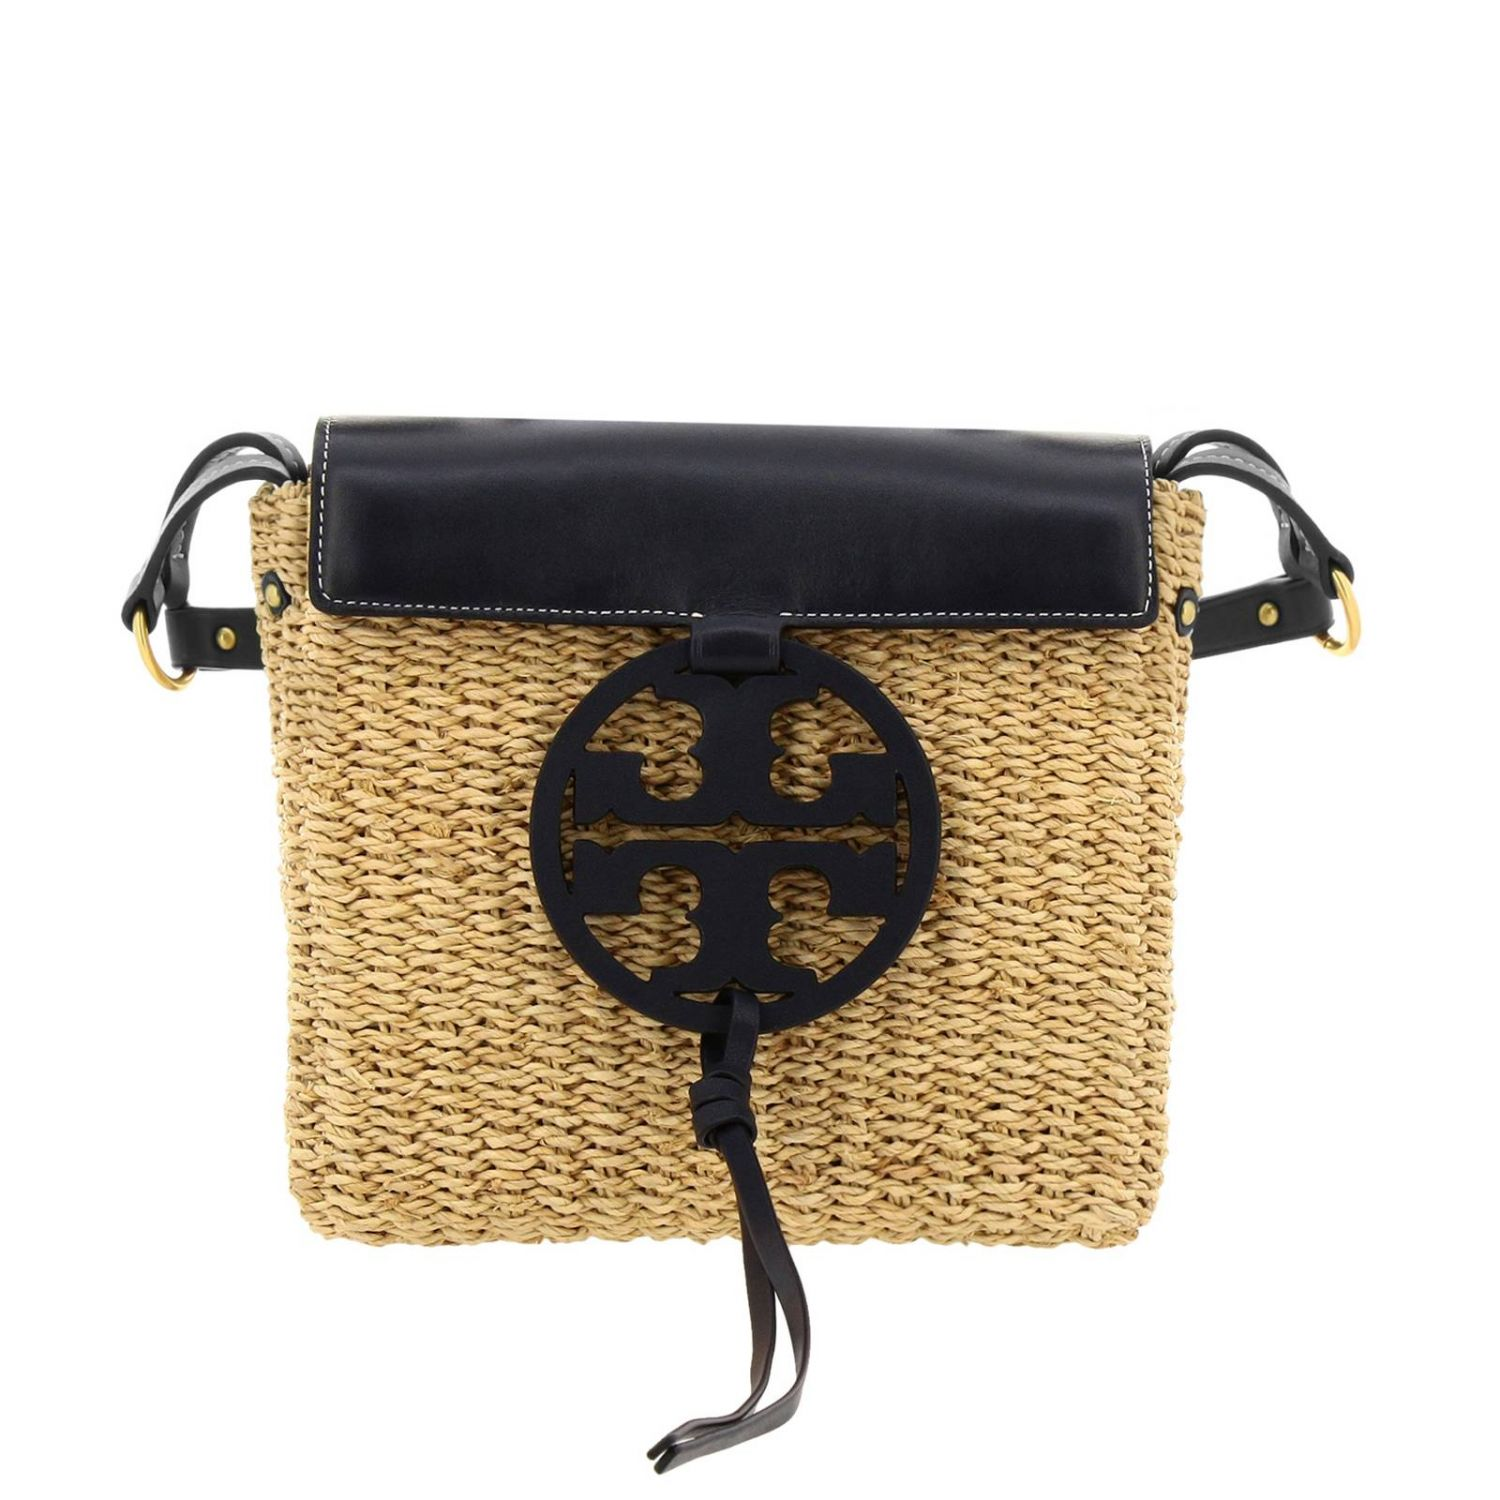 ef42eac9 Tory Burch Bags on Sale - Up to 70% off at Tradesy (Page 3)